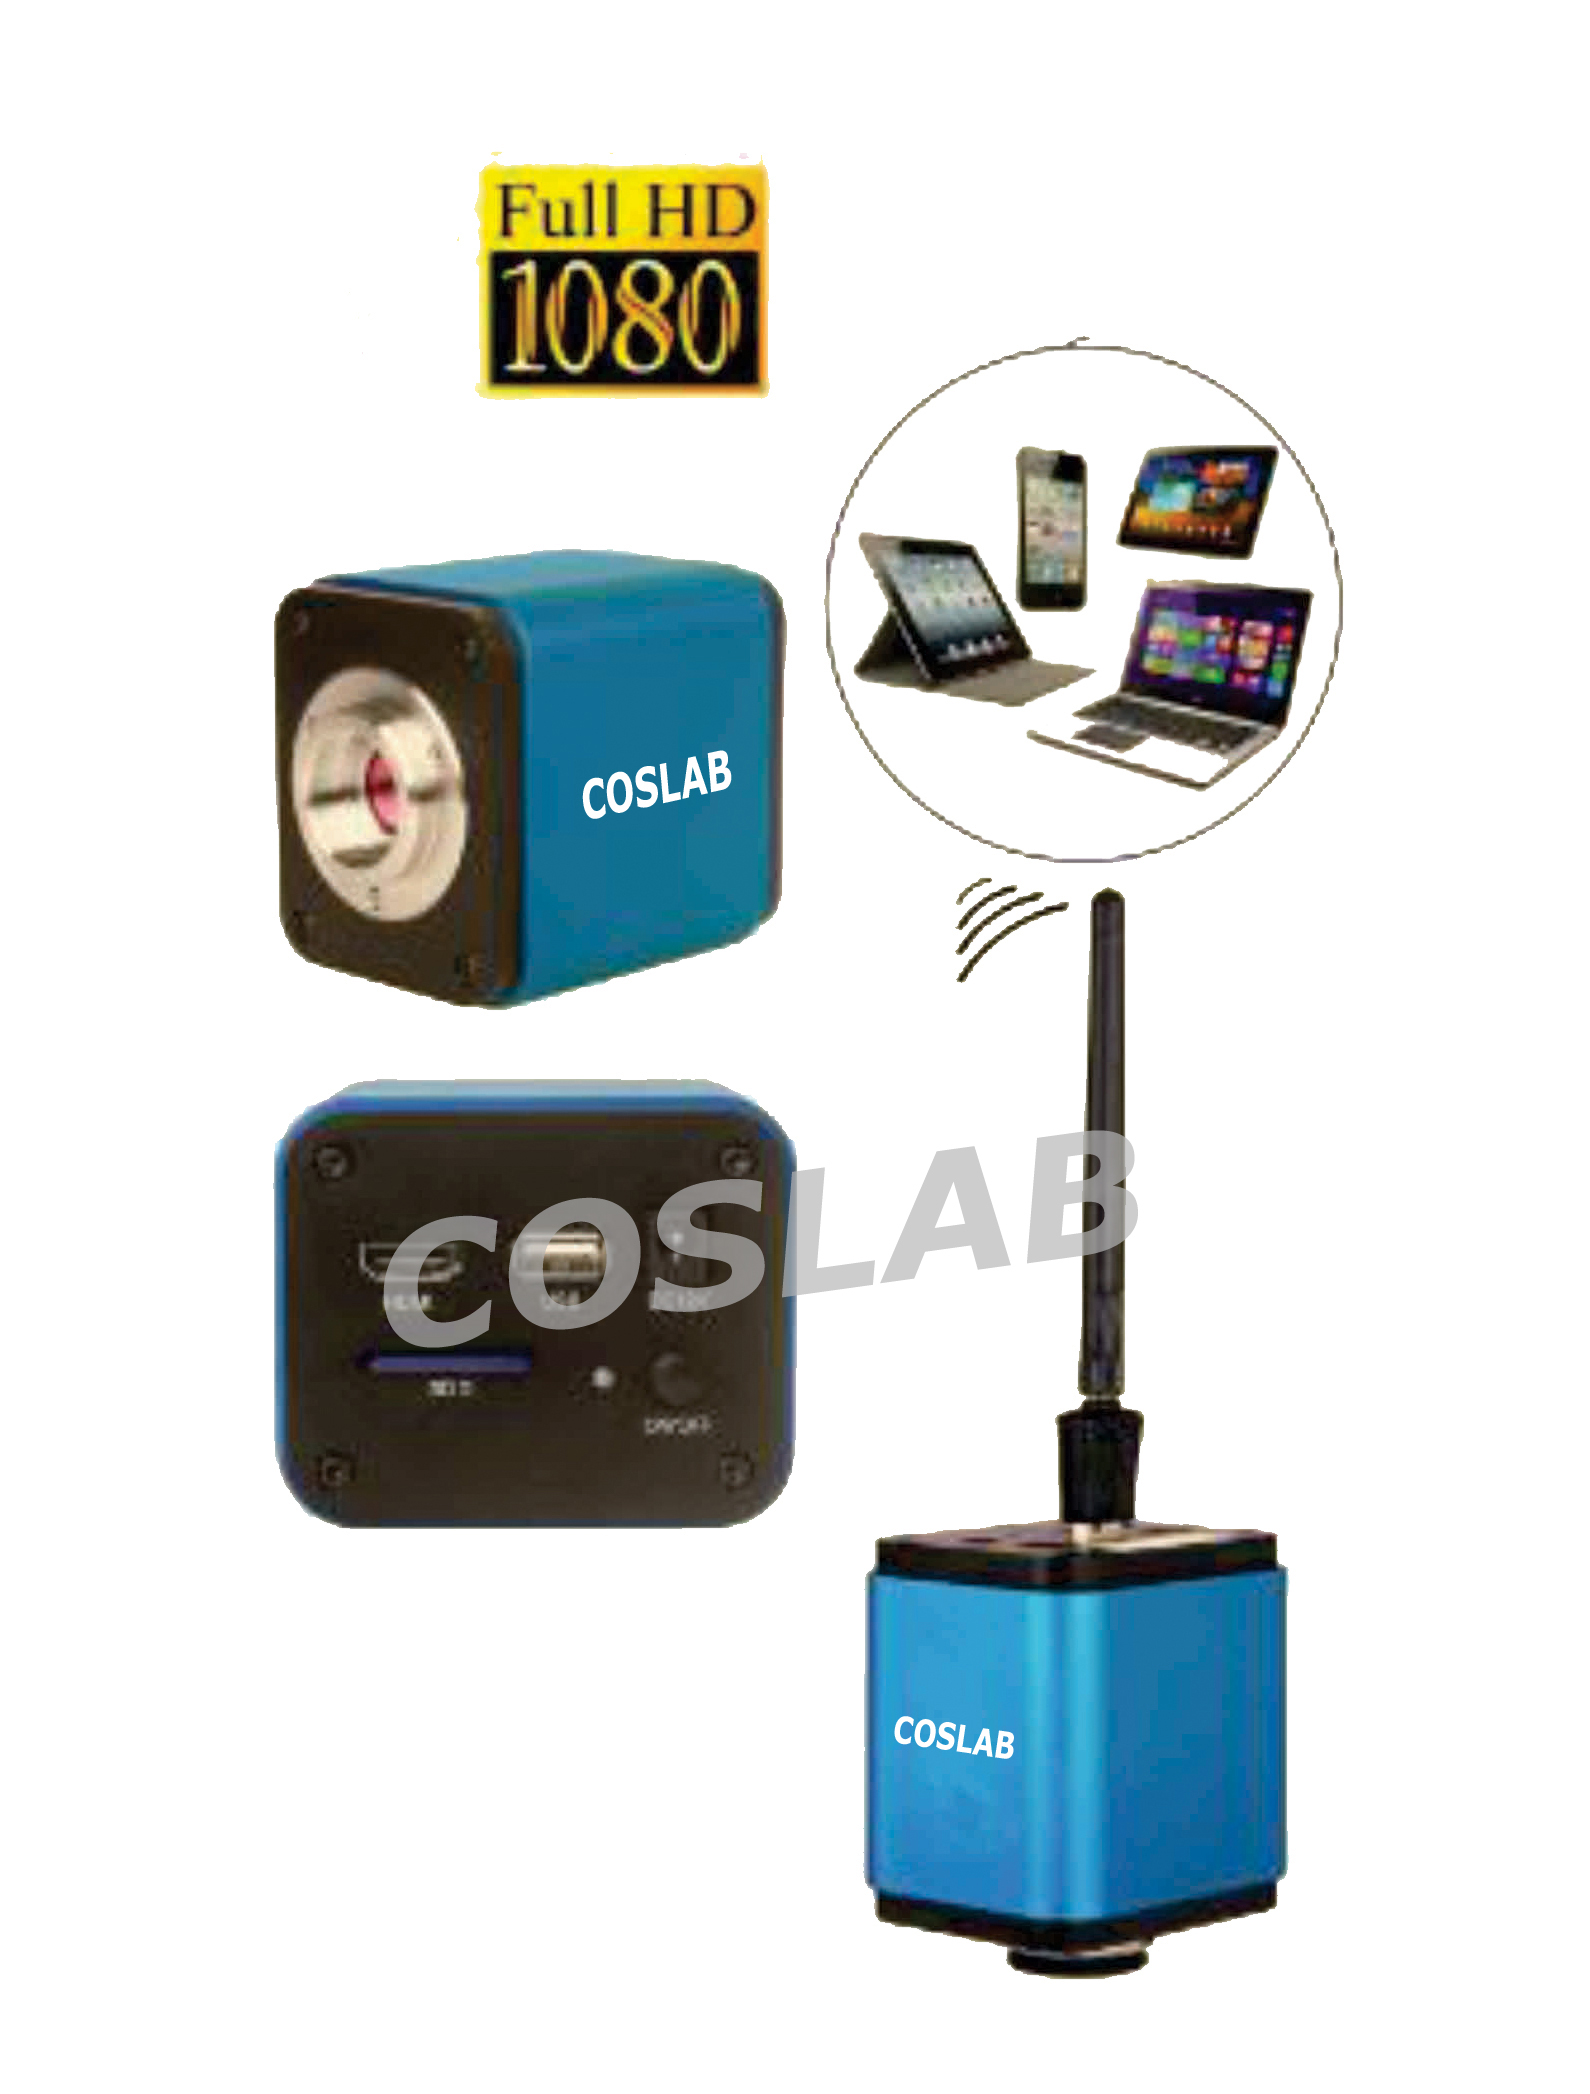 COSHD5000 1080Px FULL HDMI WIFI 5 MP CAMERA And SOFTWARE